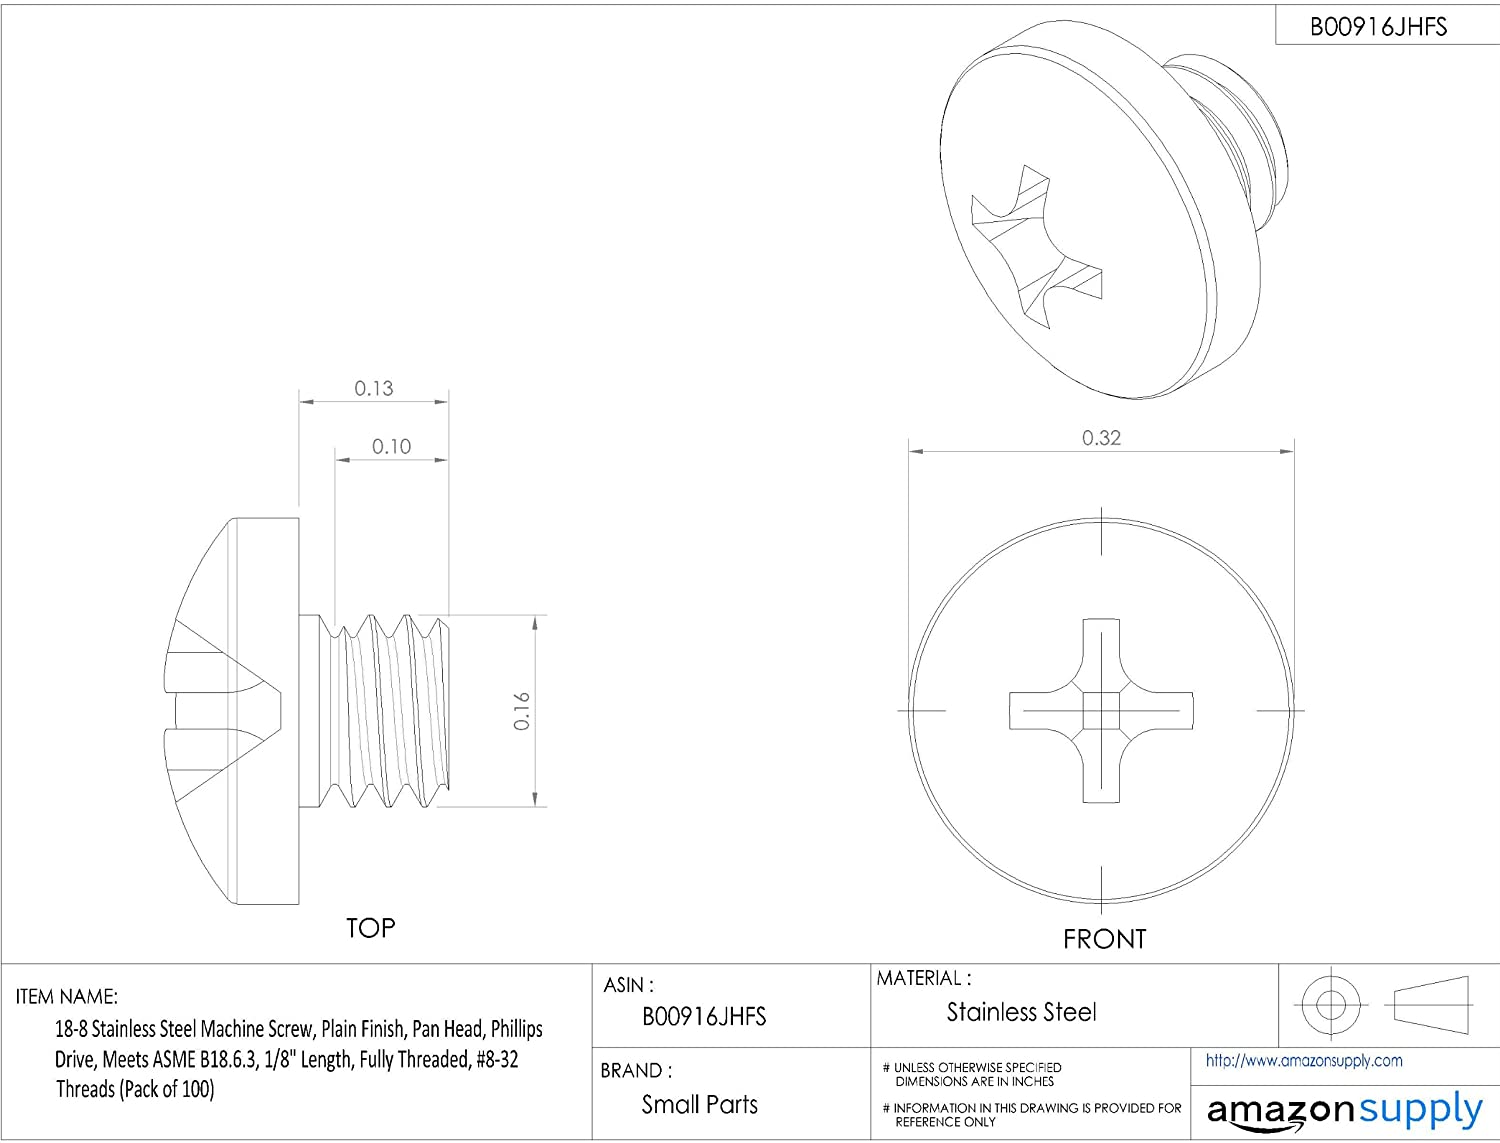 Plain Finish Pan Head Pack of 10 Meets ASME B18.6.3 18-8 Stainless Steel Machine Screw Fully Threaded 3//8-16 UNC Threads 3//4 Length Phillips Drive